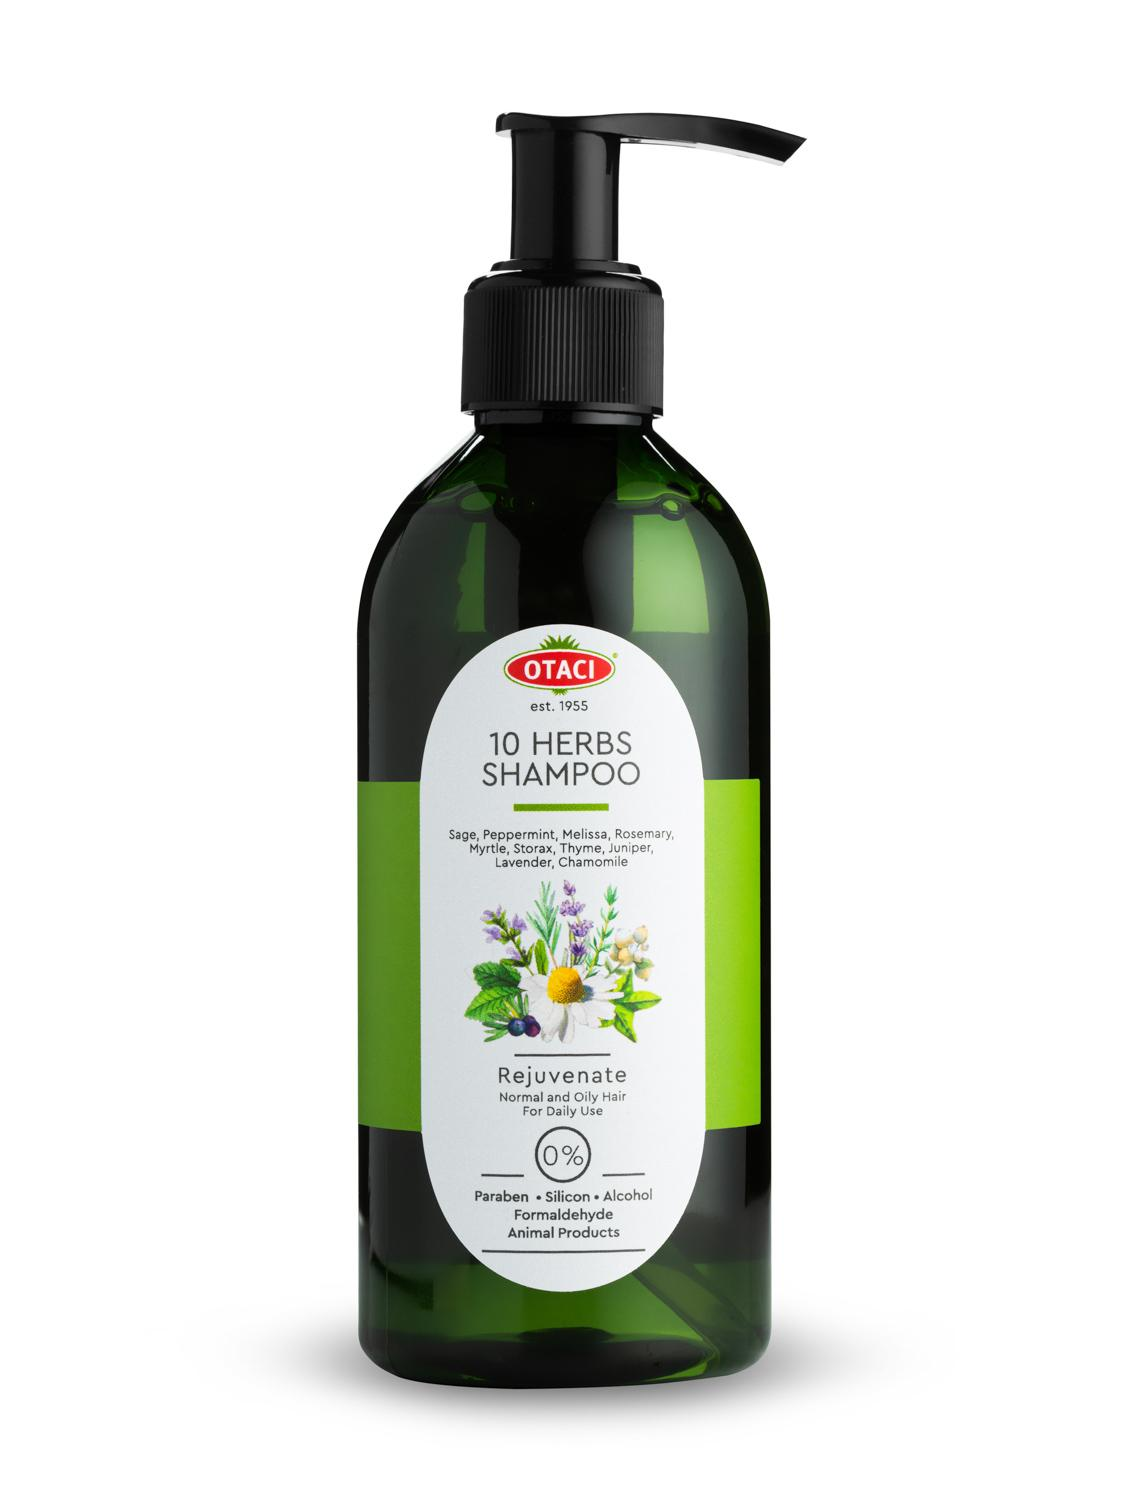 Otaci/ herbal shampoo with 10 herbs. Bouquet oil lavender, sage, mint, rosemary, мирты, Daisy.